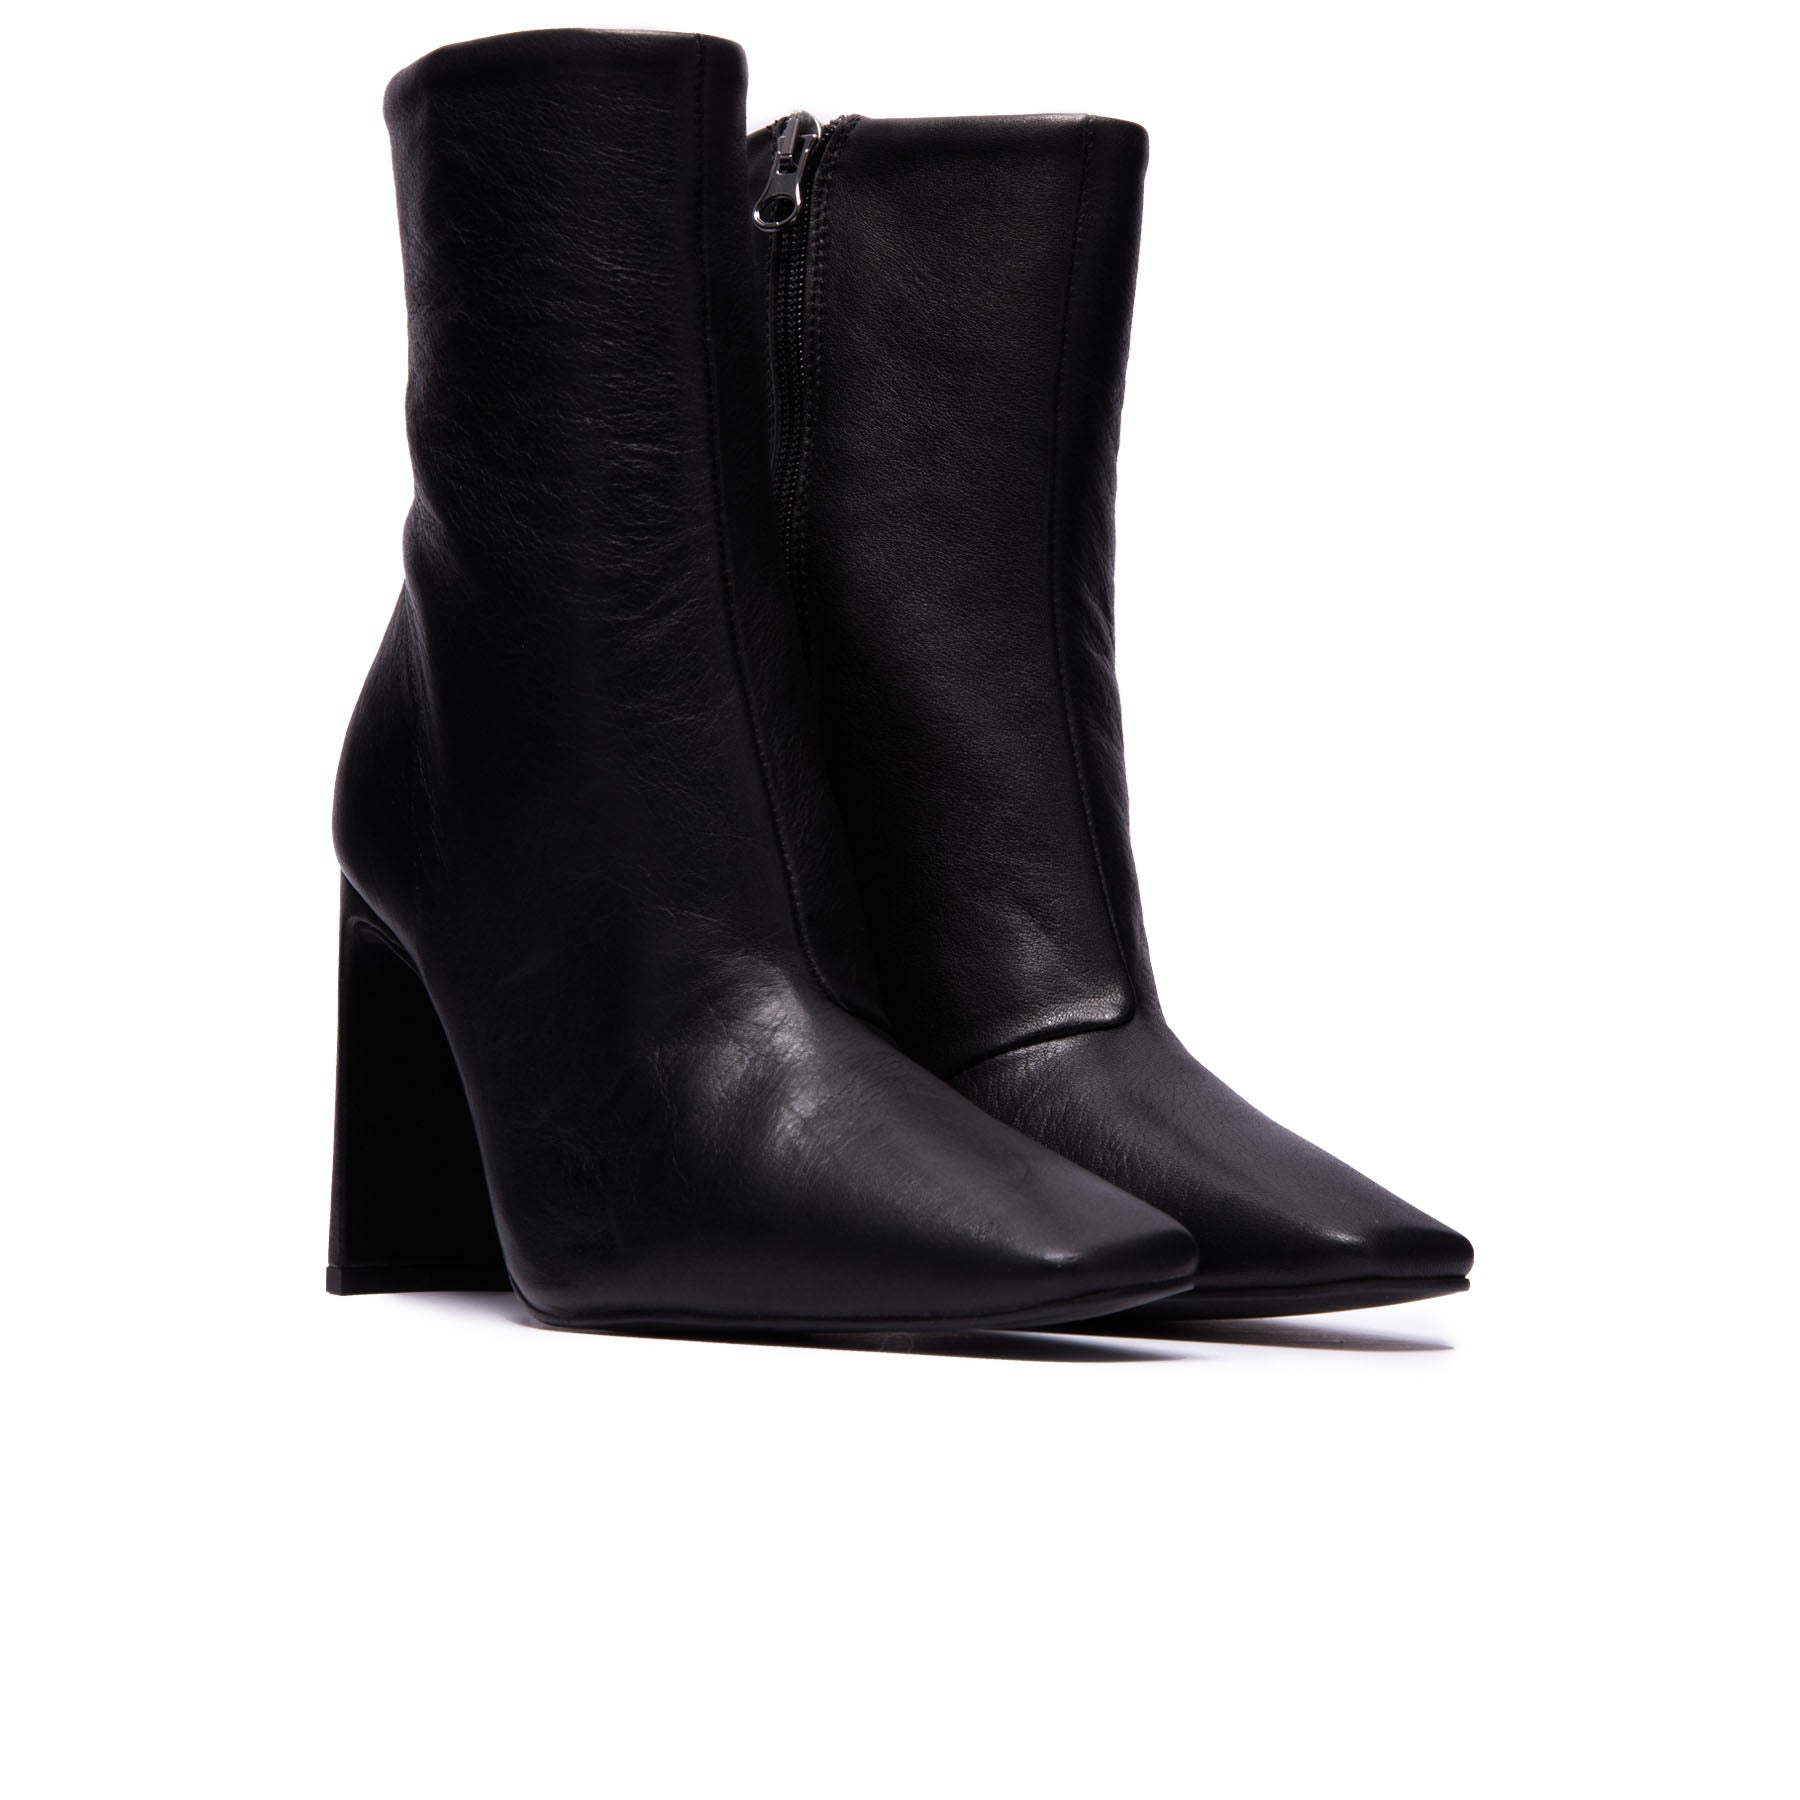 Lyon Black Leather Ankle Boots